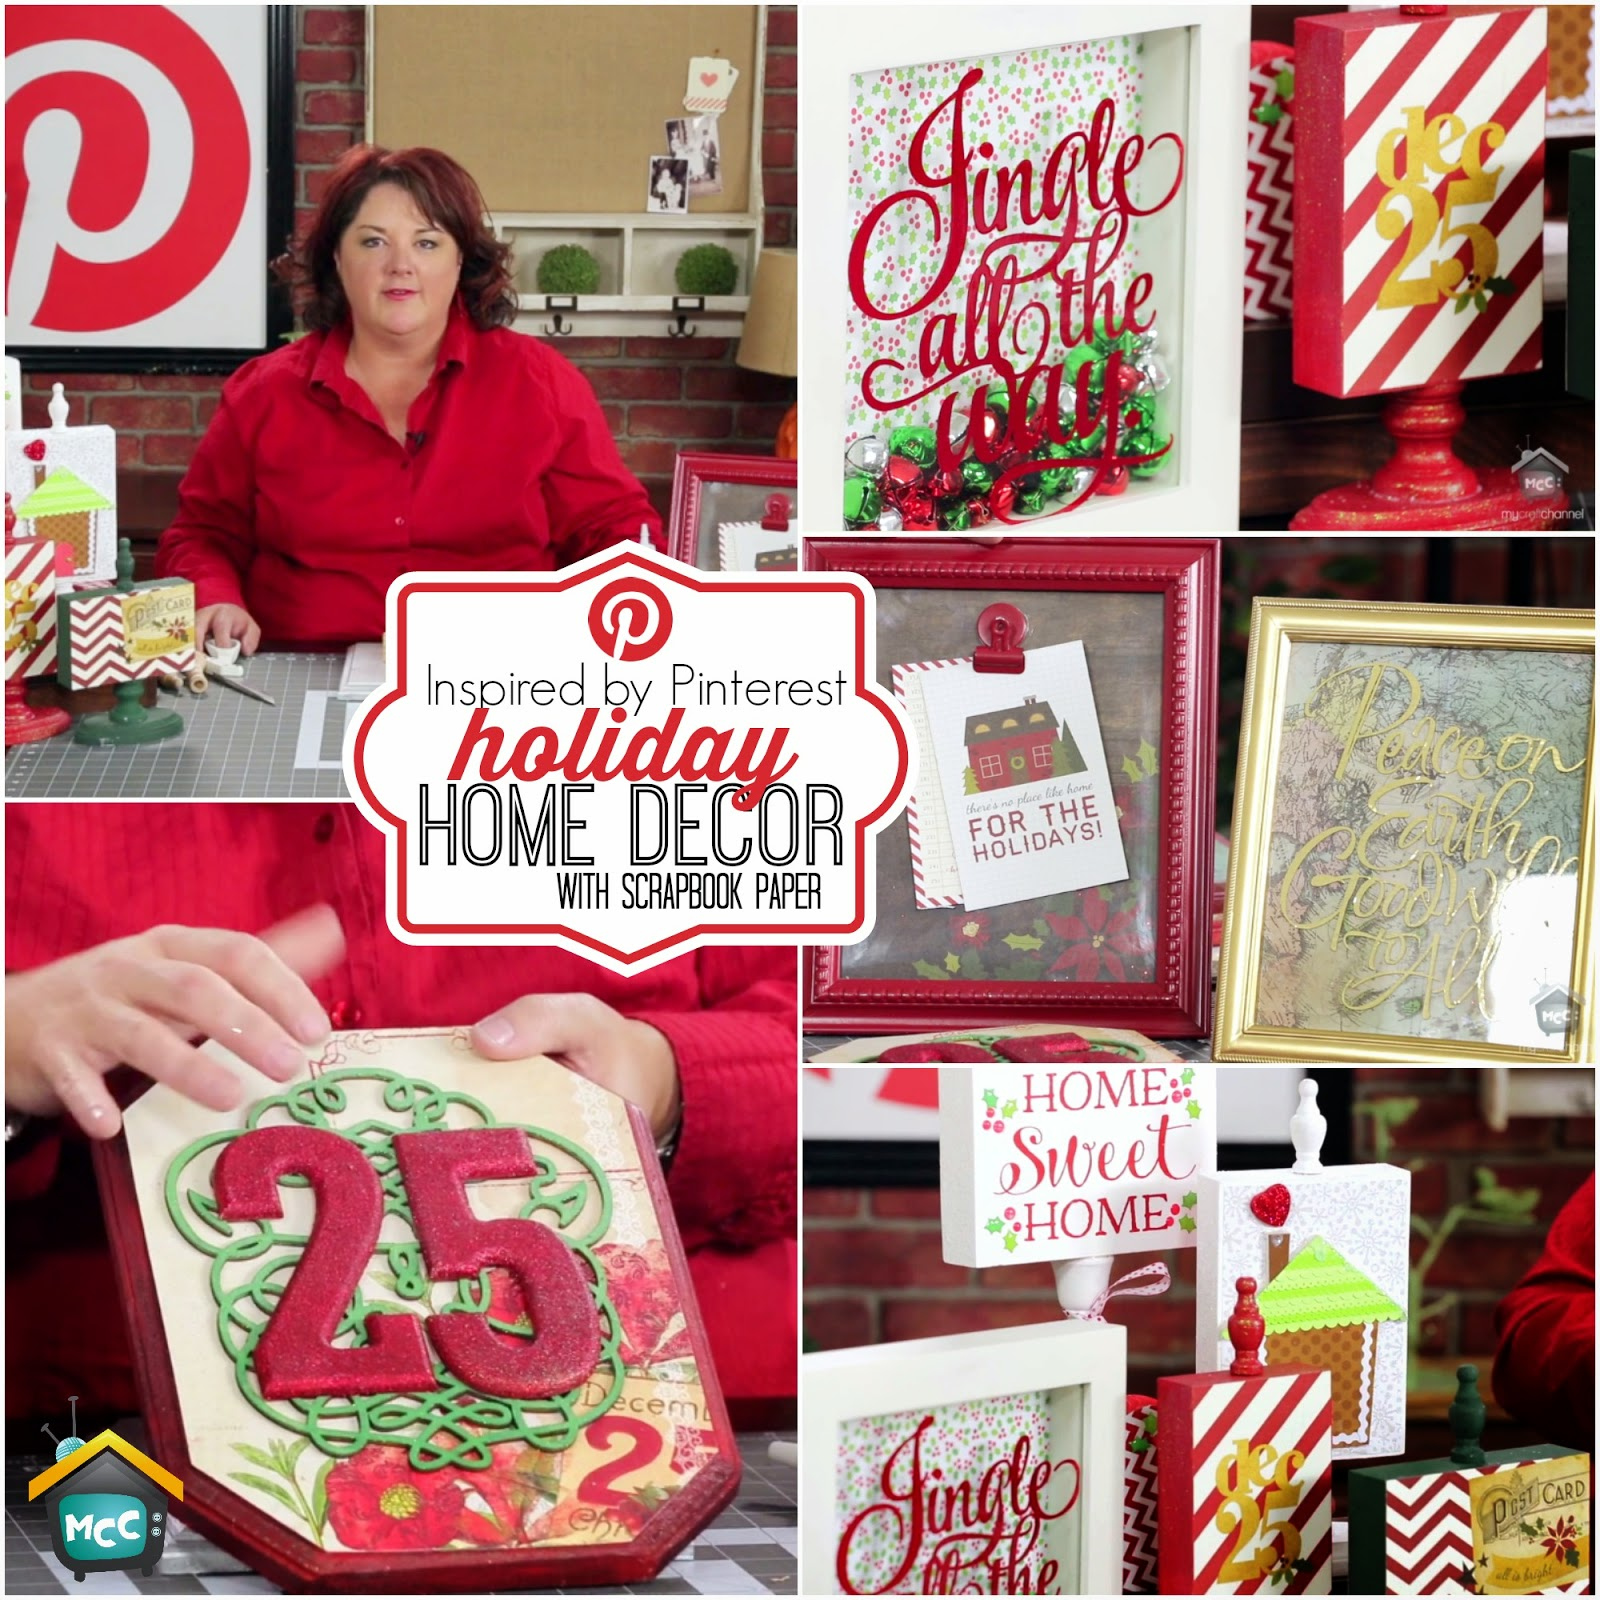 Pinterest Home Decor 2014: My Craft Channel: Nov. 13th: Inspired By Pinterest